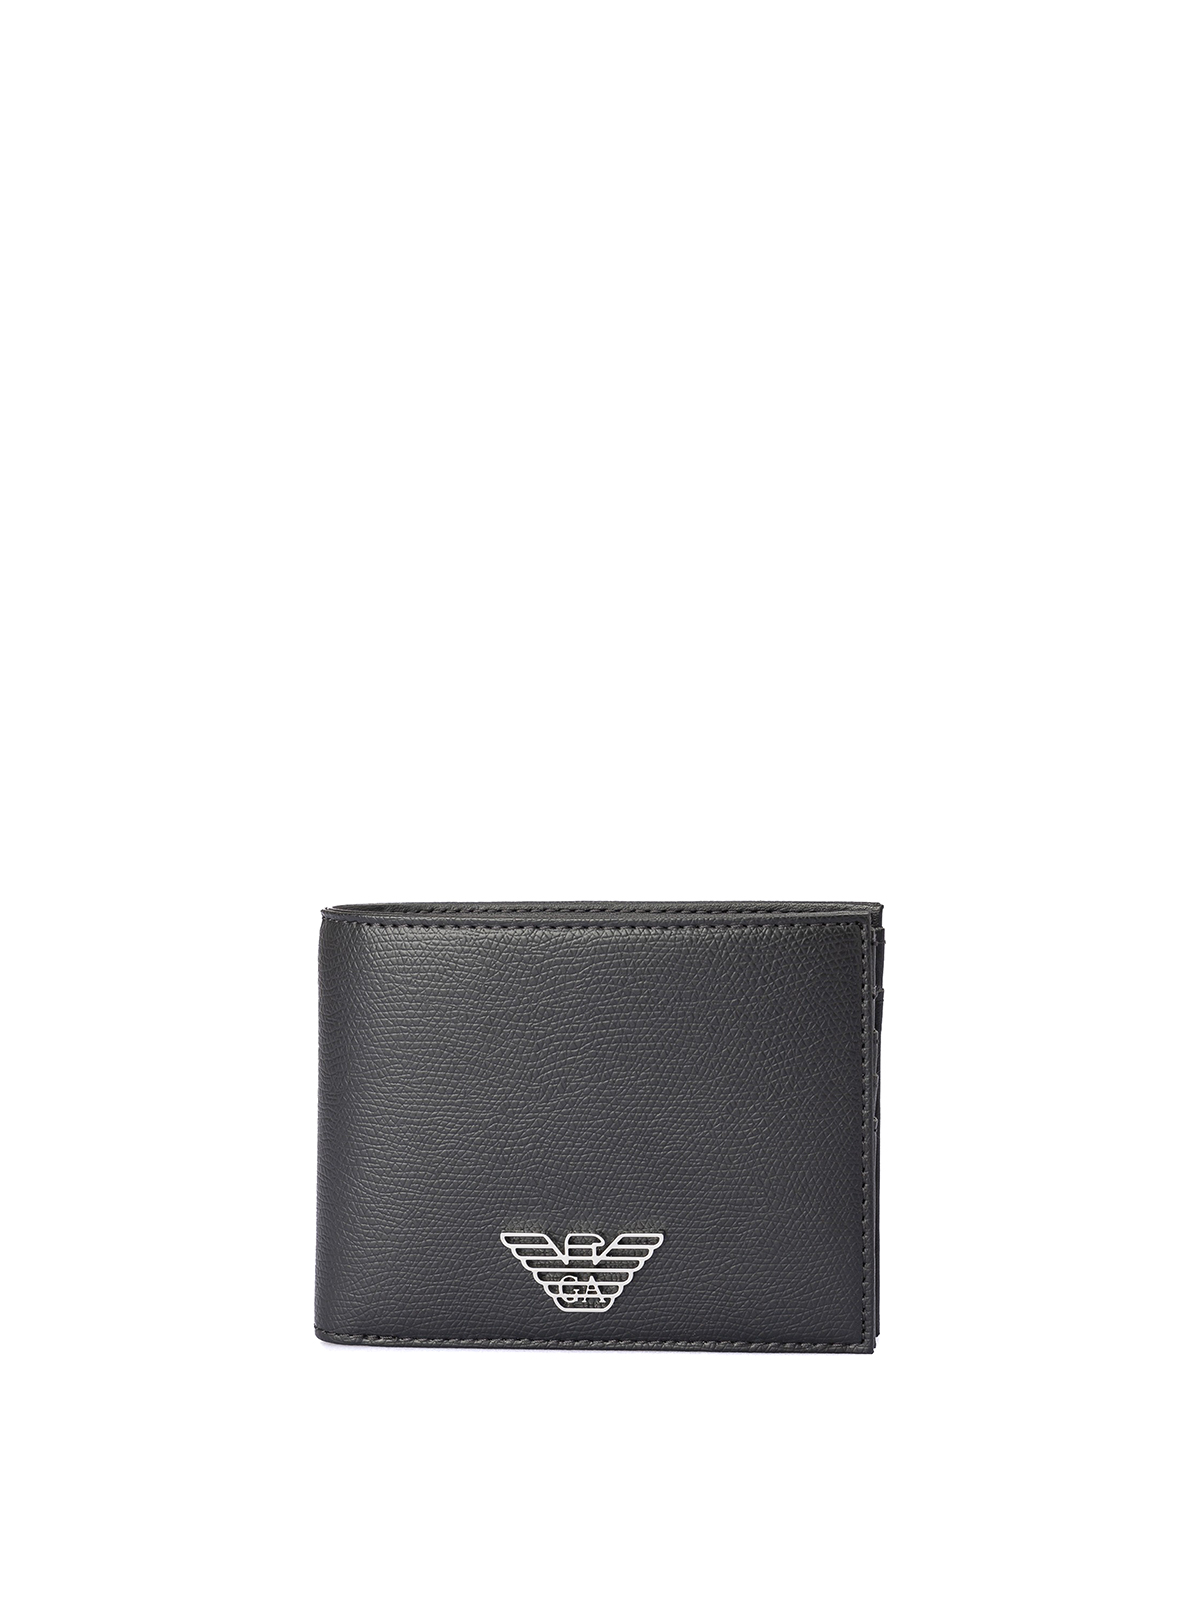 Emporio Armani Coin Pocket Faux Leather Wallet In Black